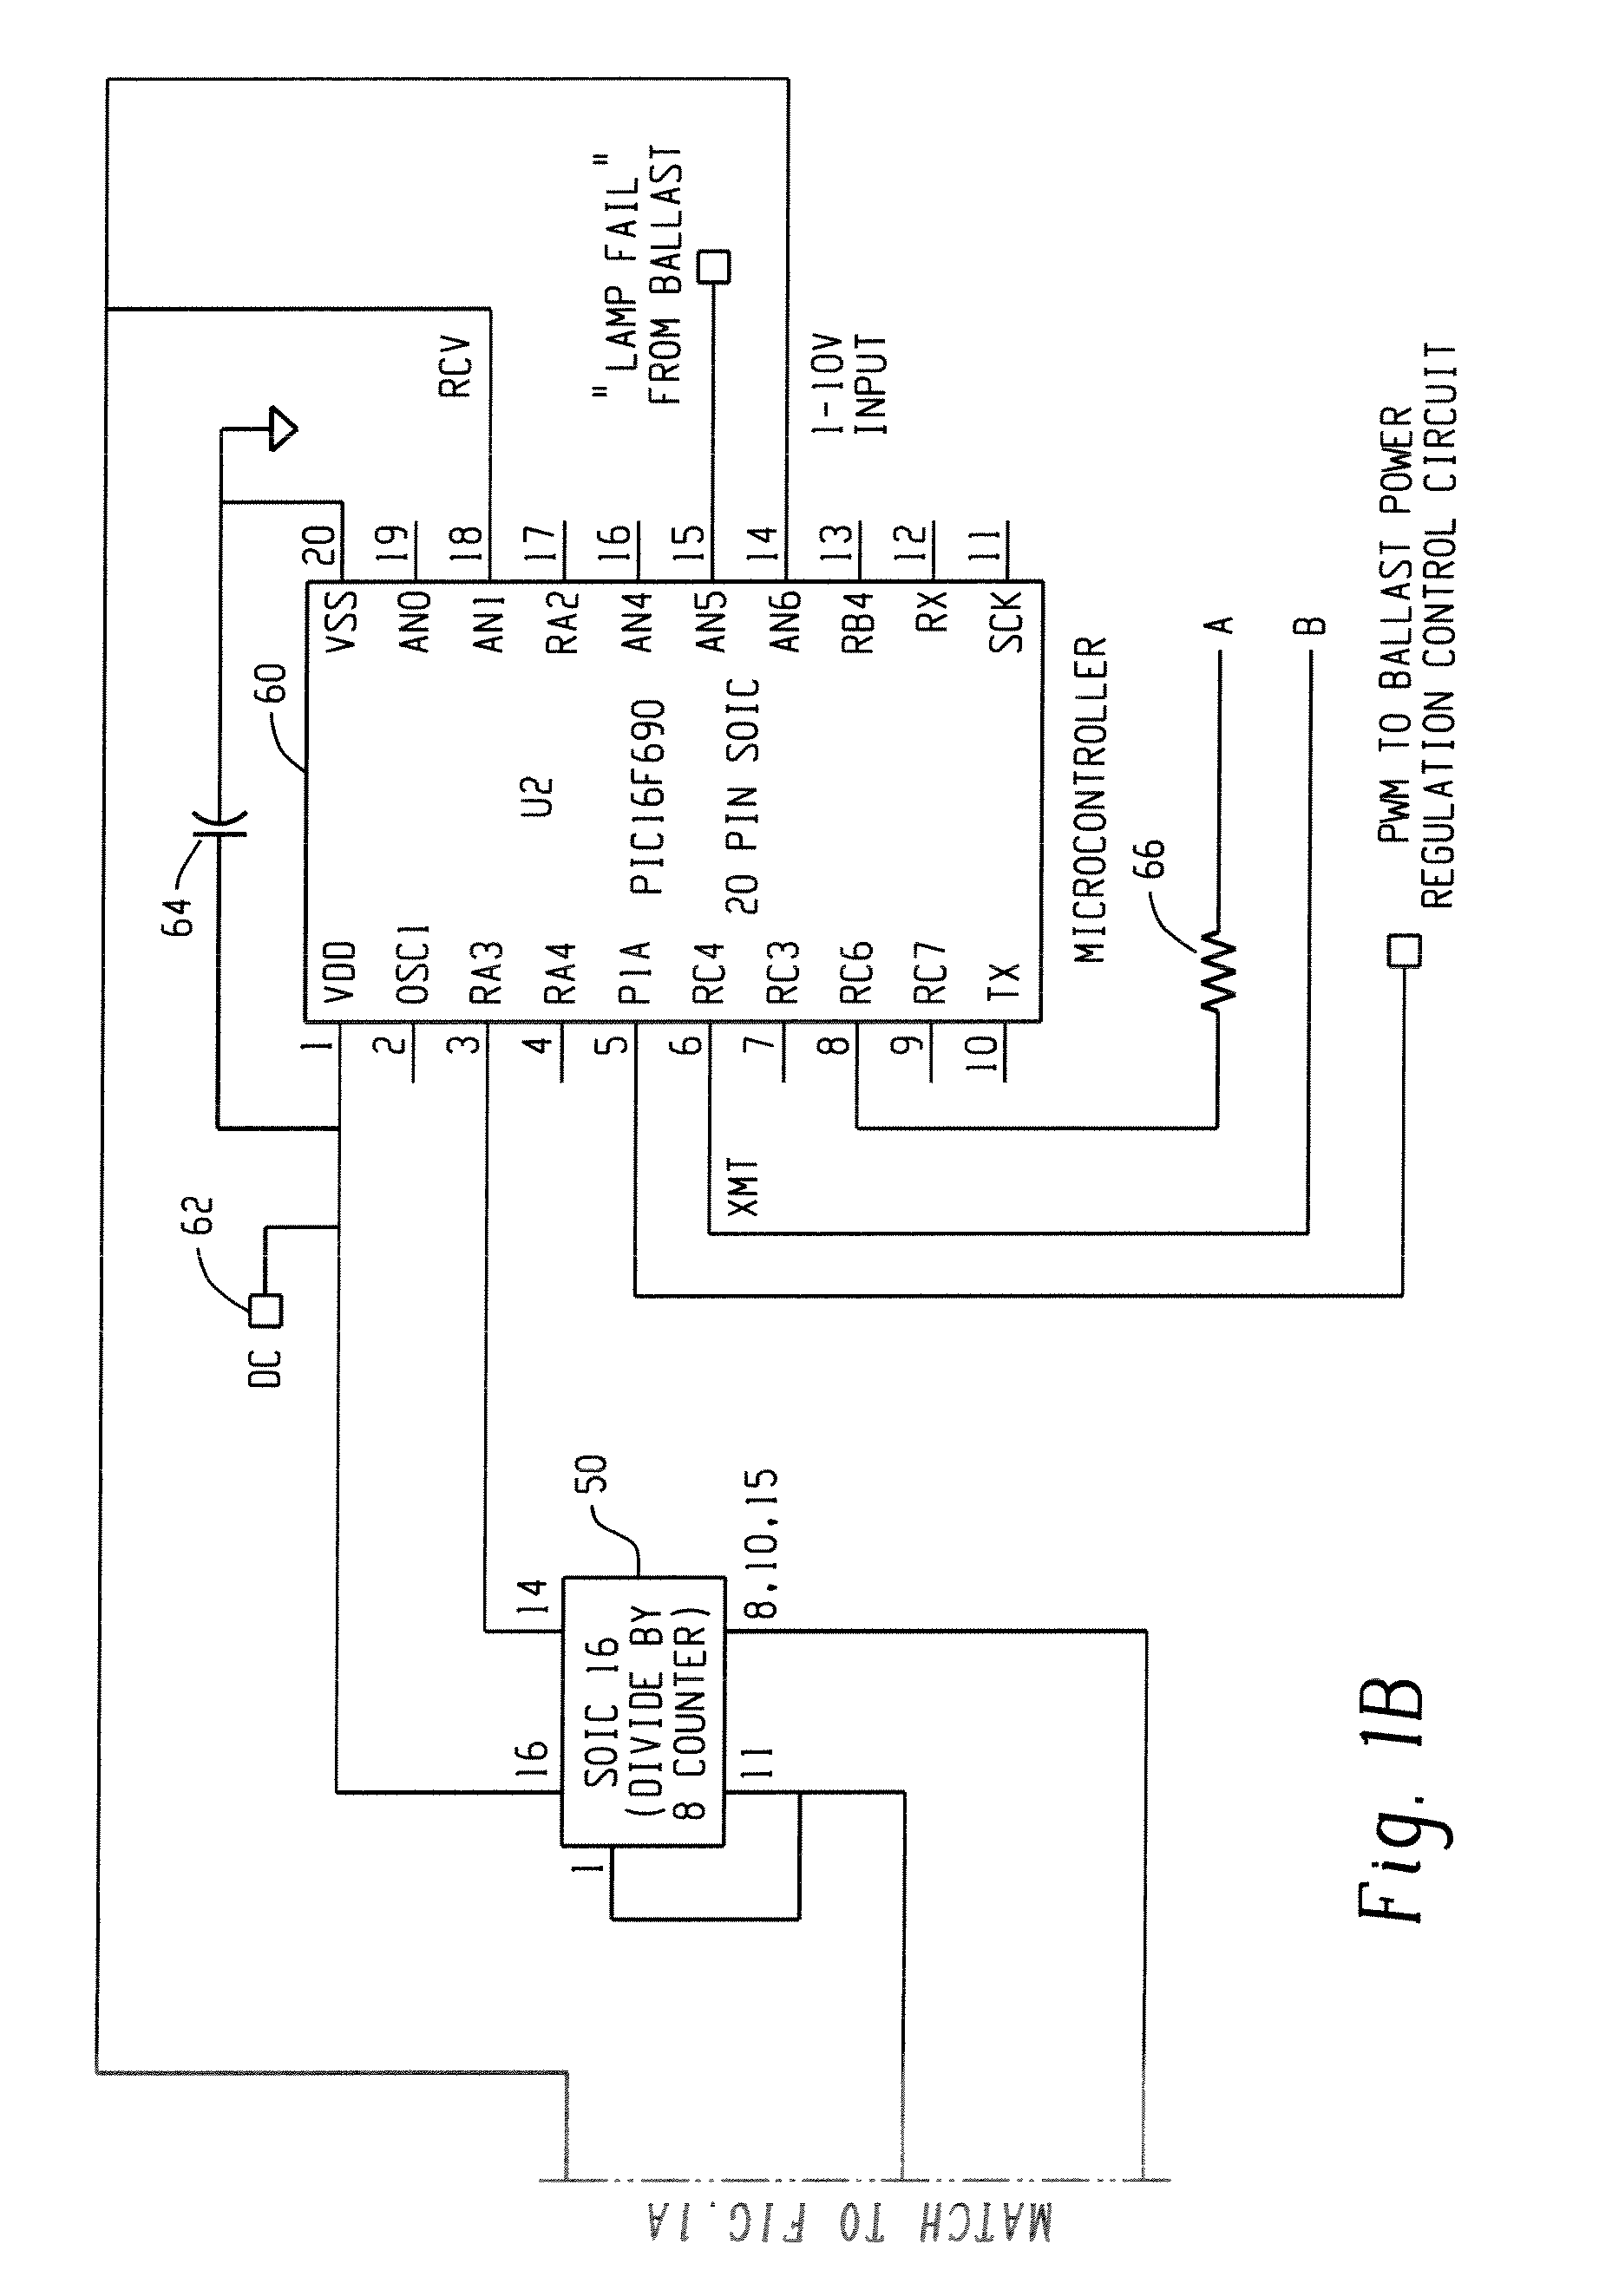 Fluorescent Dimming Control Diagram Wiring Diagrams Lightolier Patent Us8072164 Unified 0 10v And Dali Dimmer Led Circuit Bta06